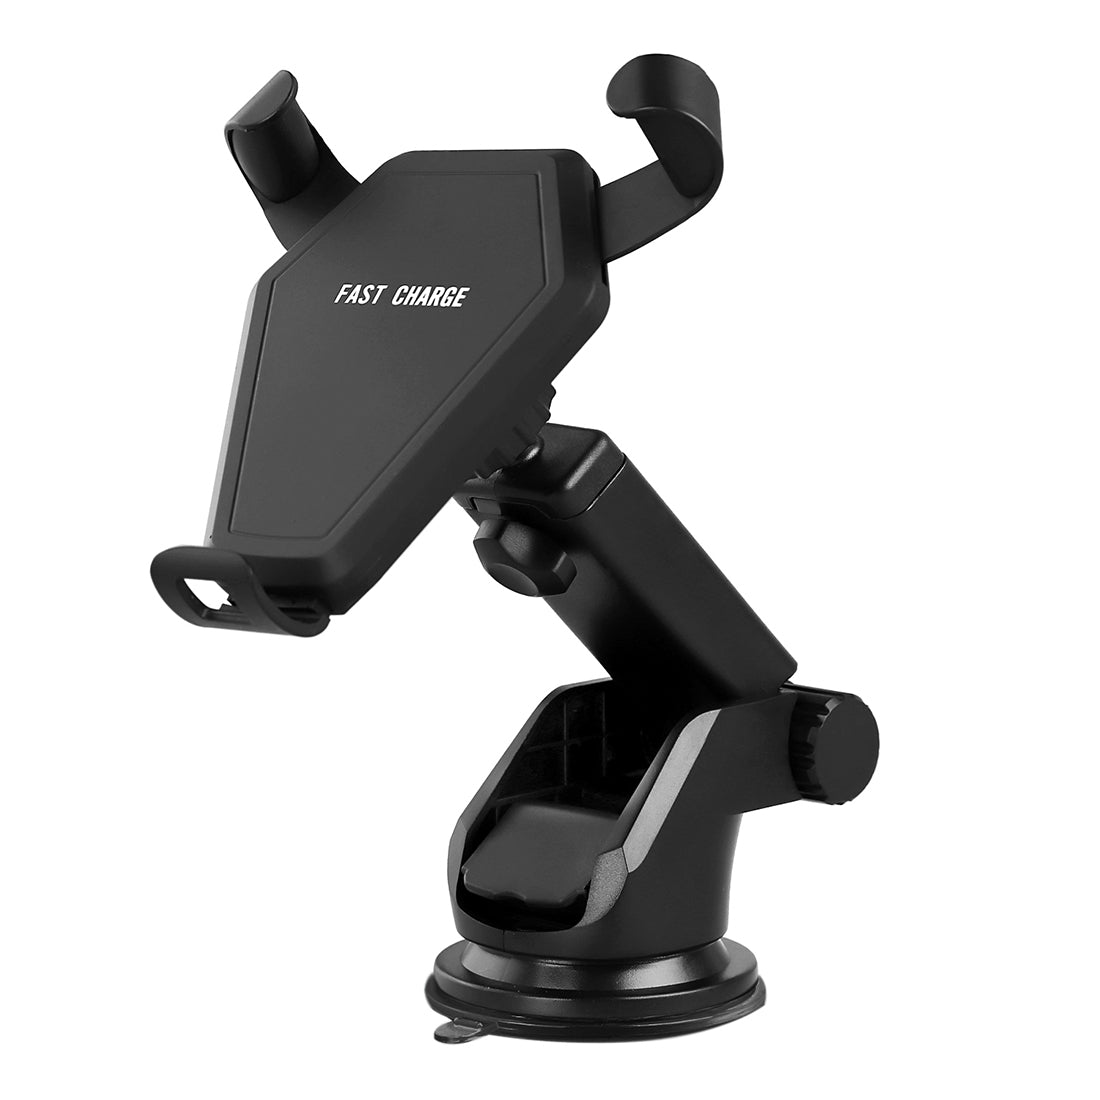 Windshield Suction Mount with QC 2.0 Fast Charging | Fommy